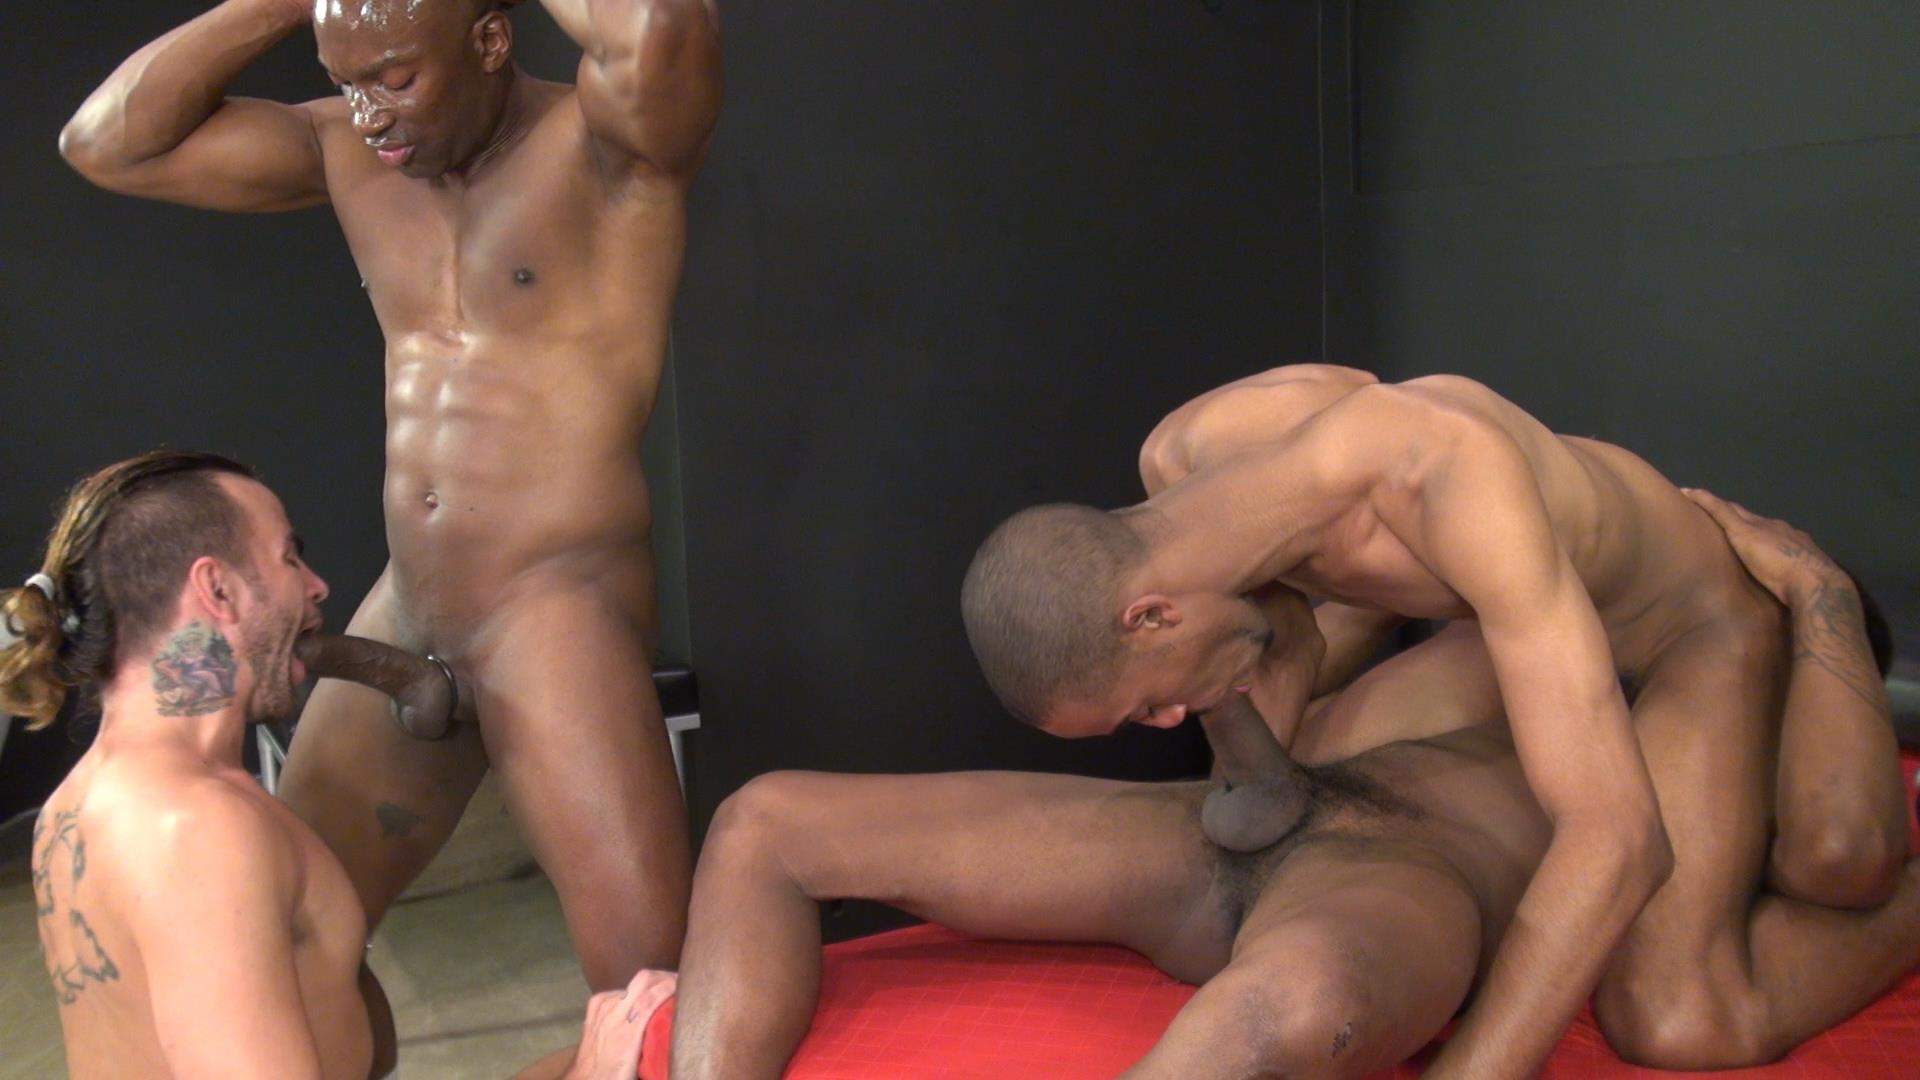 Raw and Rough Champ Robinson Lukas Cipriani Knockout Tigger Redd BBBH Amateur Gay Porn 16 White Boy Gets A Breeding By Three Big Black Dicks